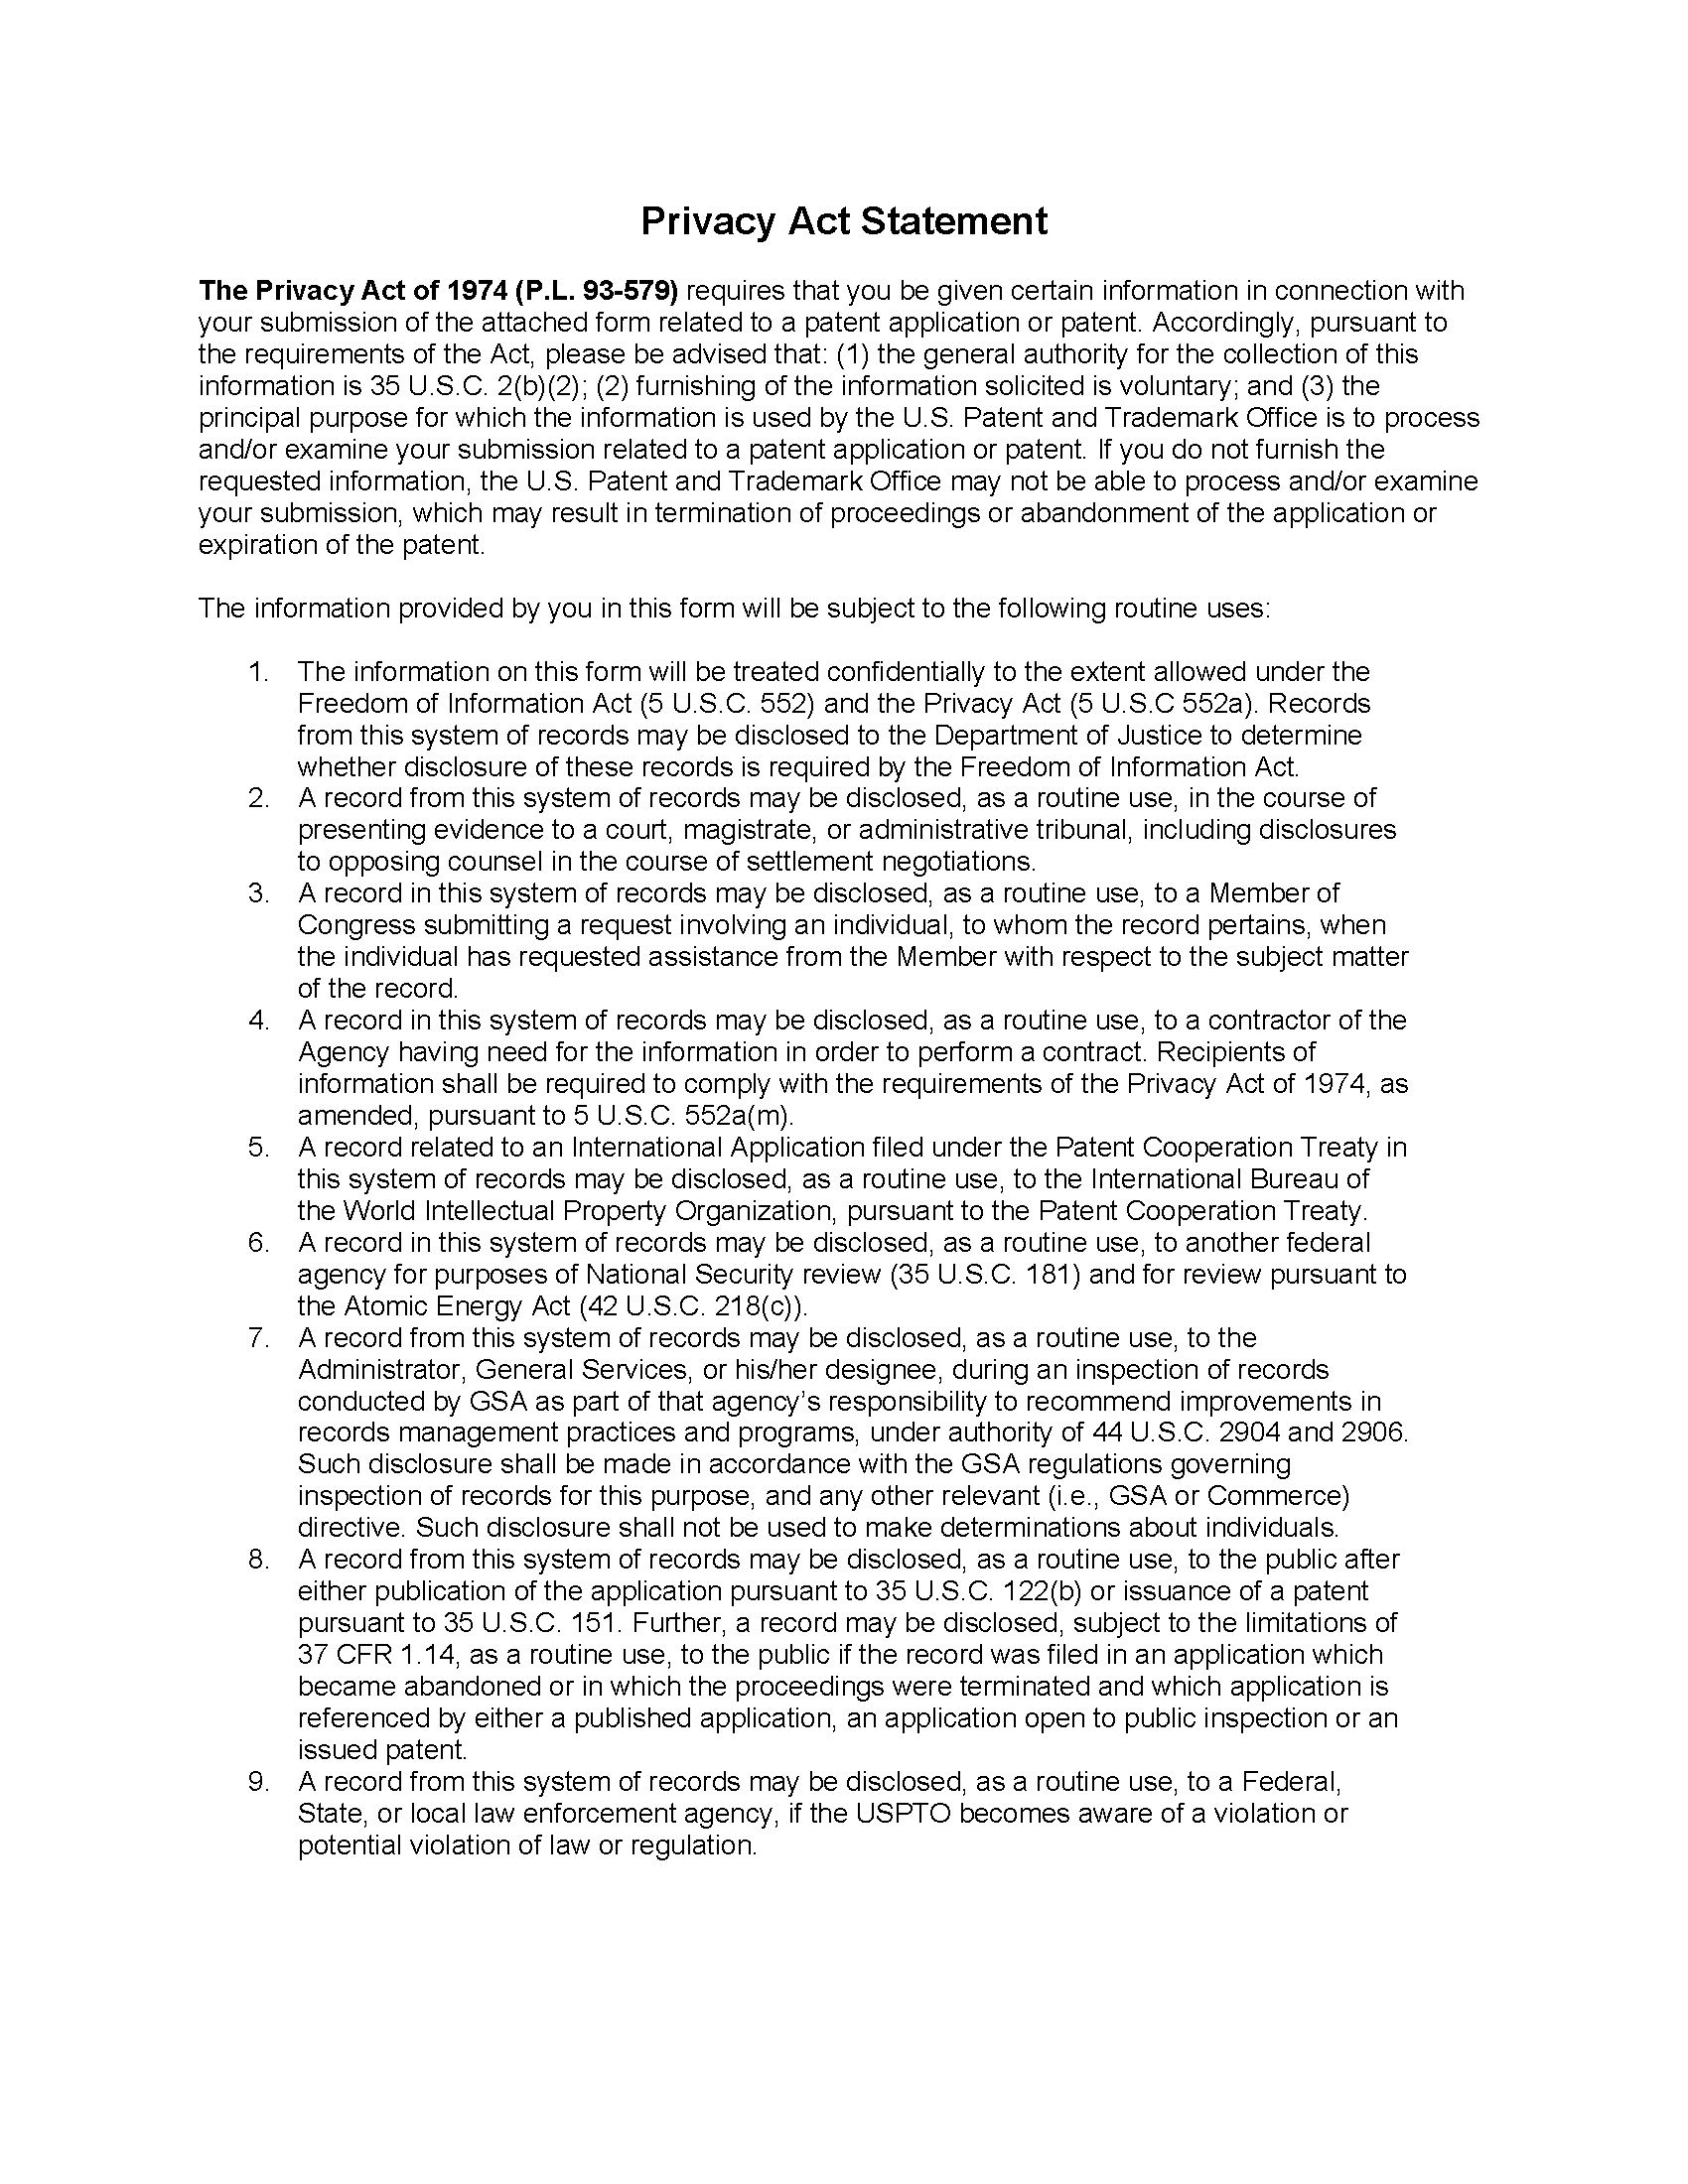 Pto/sb/08A Privacy Act Statement